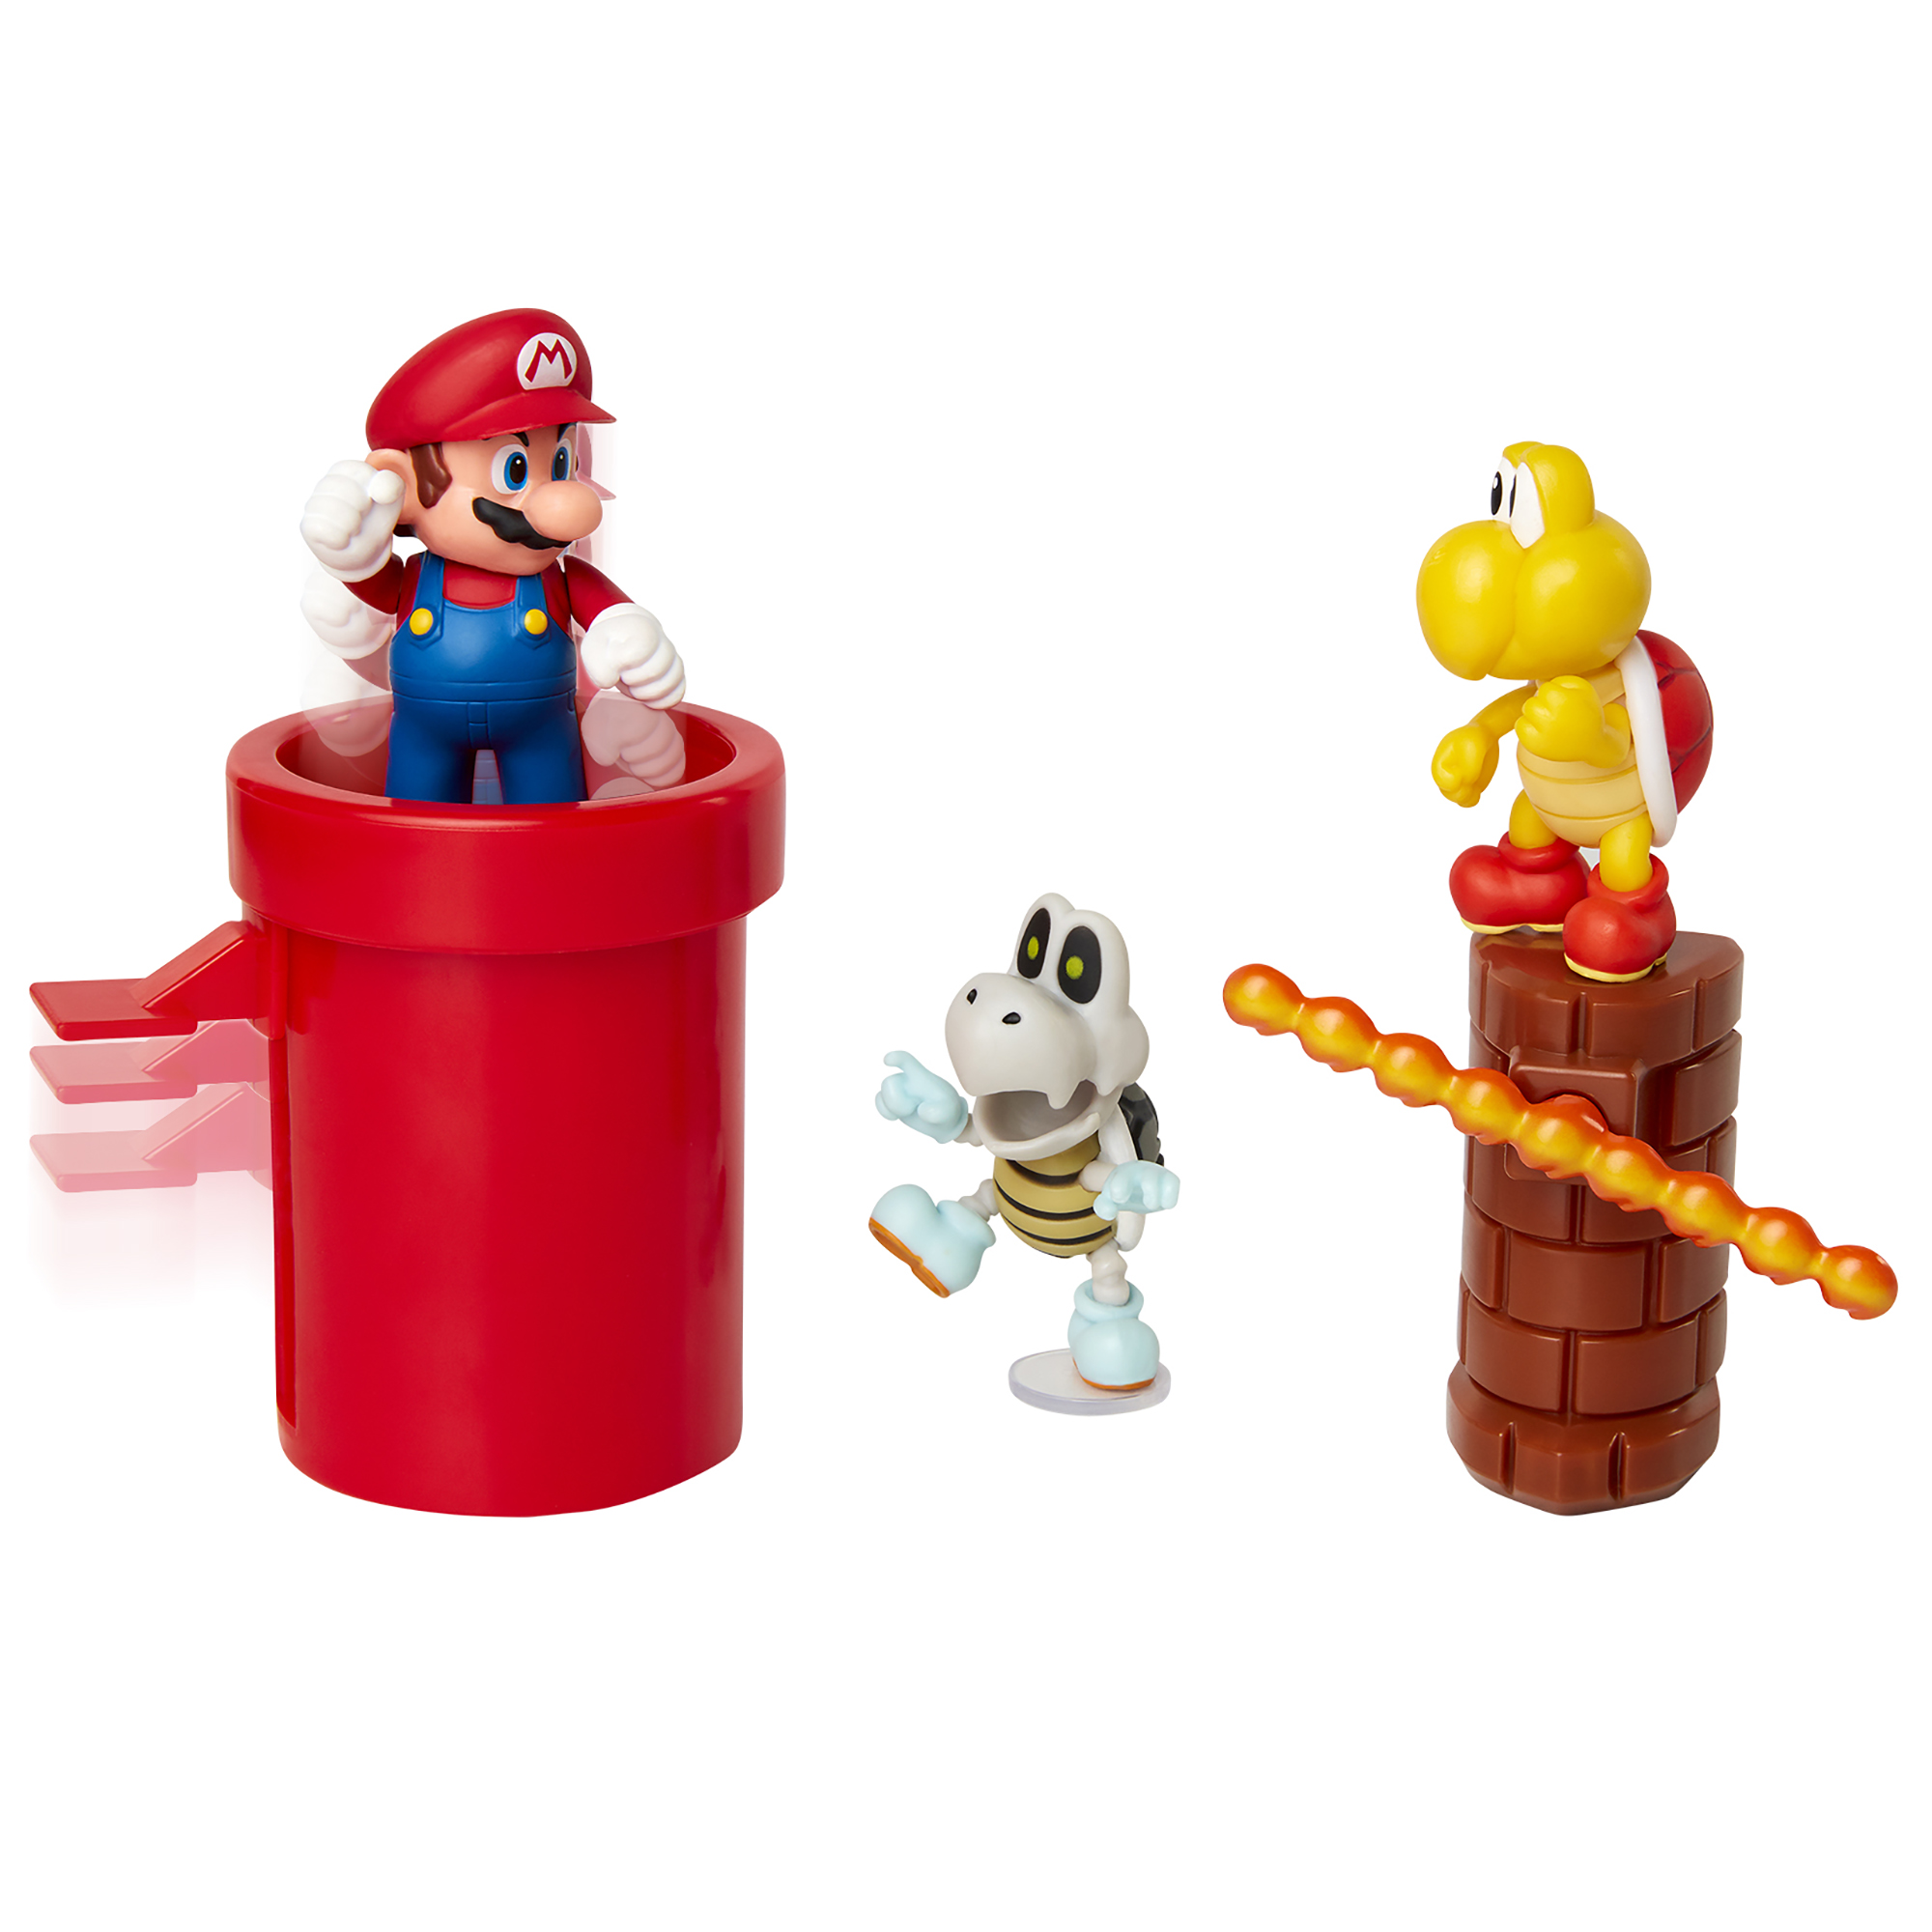 Super Mario 2.5 Dungeon Diorama Set